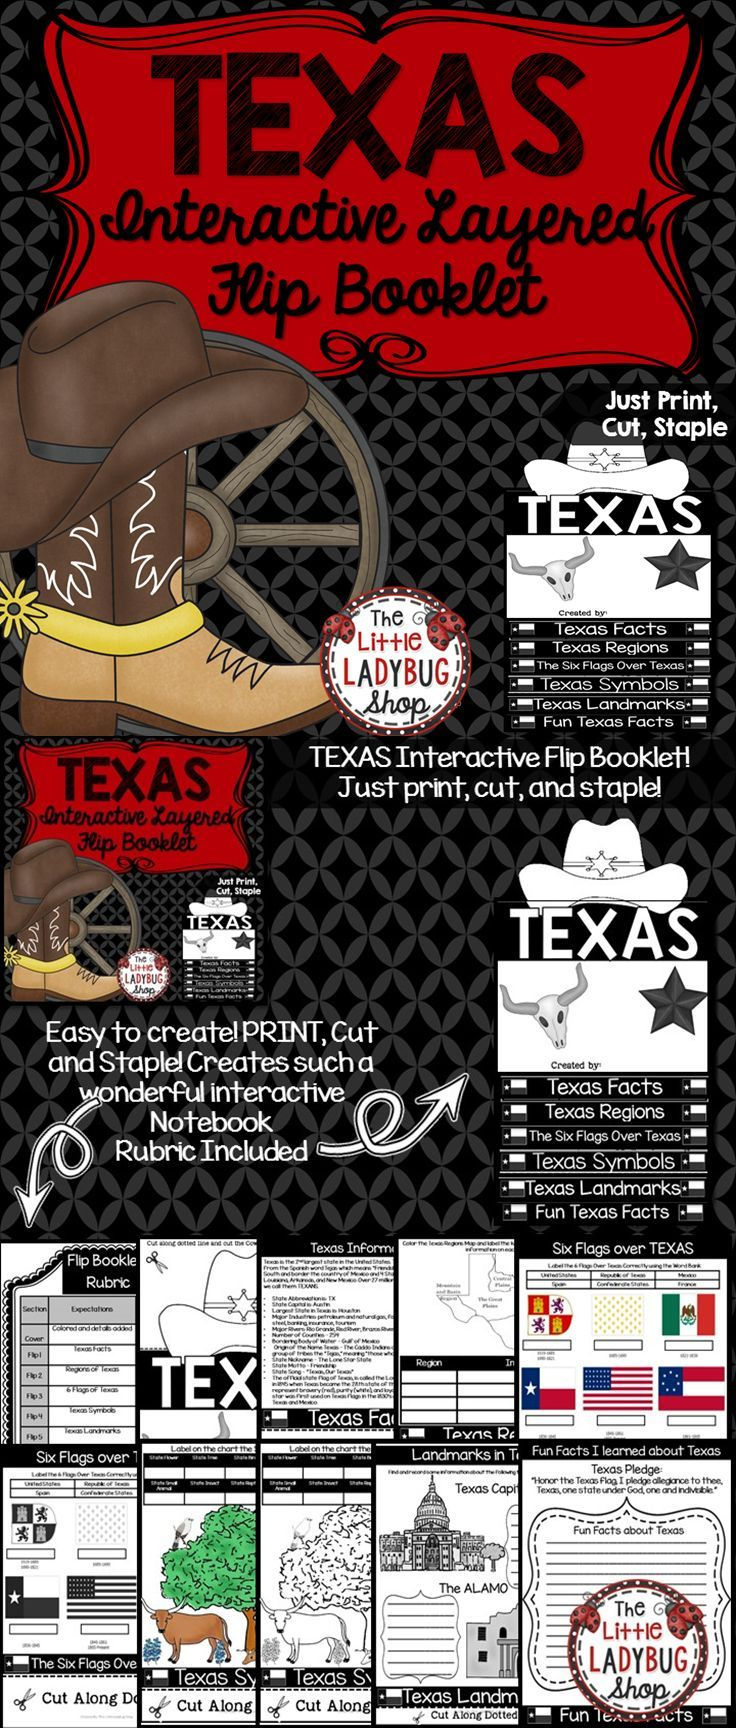 Texas Research Flip Book Texas Symbols Landmarks More Texas